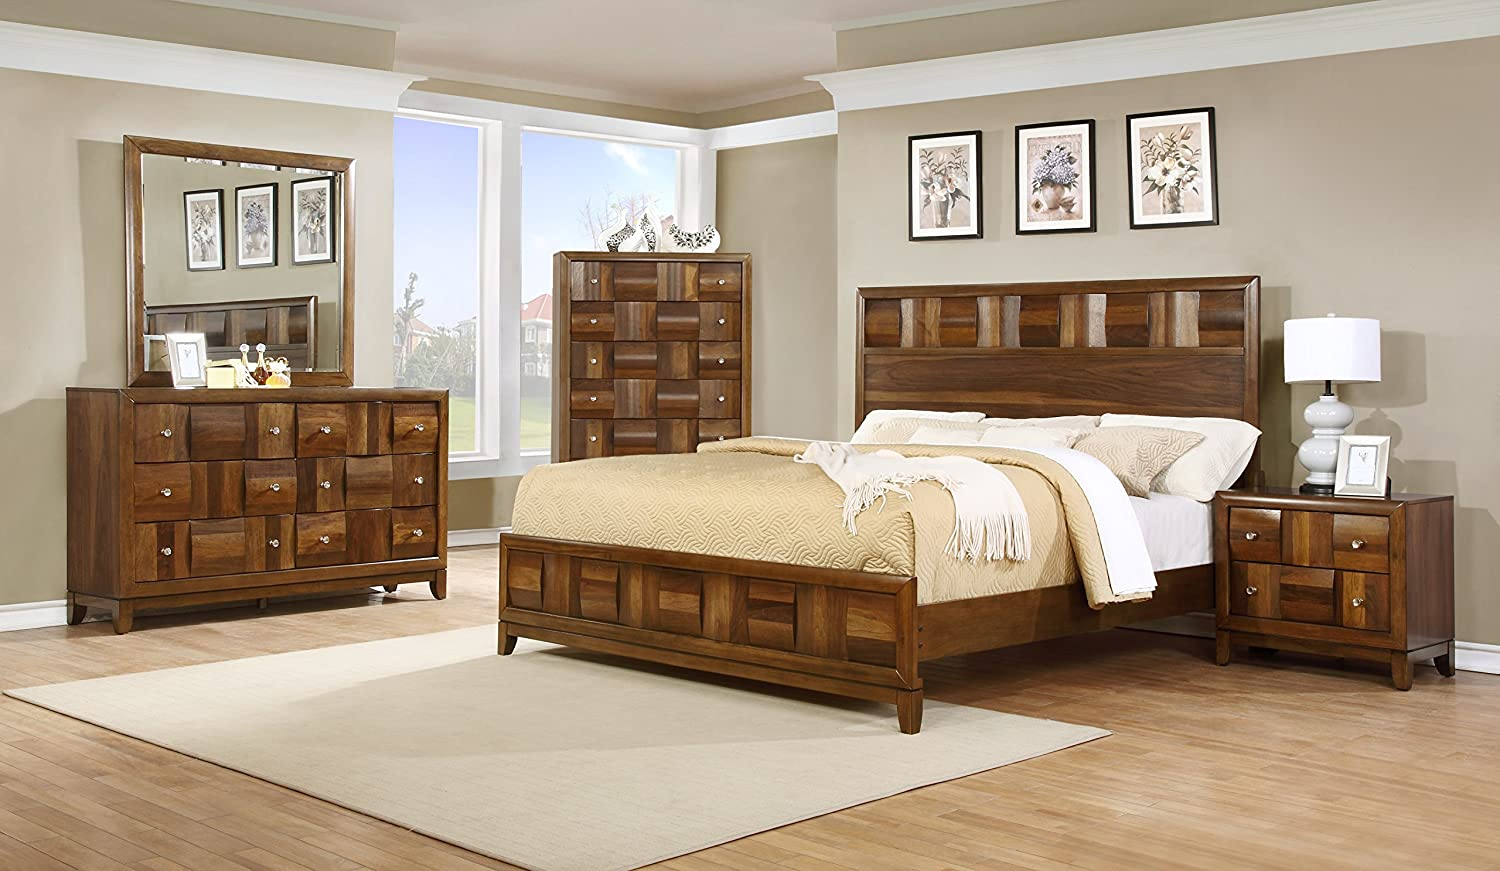 Amazon.com: Roundhill Furniture Calais Solid Wood Construction Bedroom Set  With Bed, Dresser, Mirror, Night Stand, Chest, Queen, Walnut: Kitchen U0026  Dining